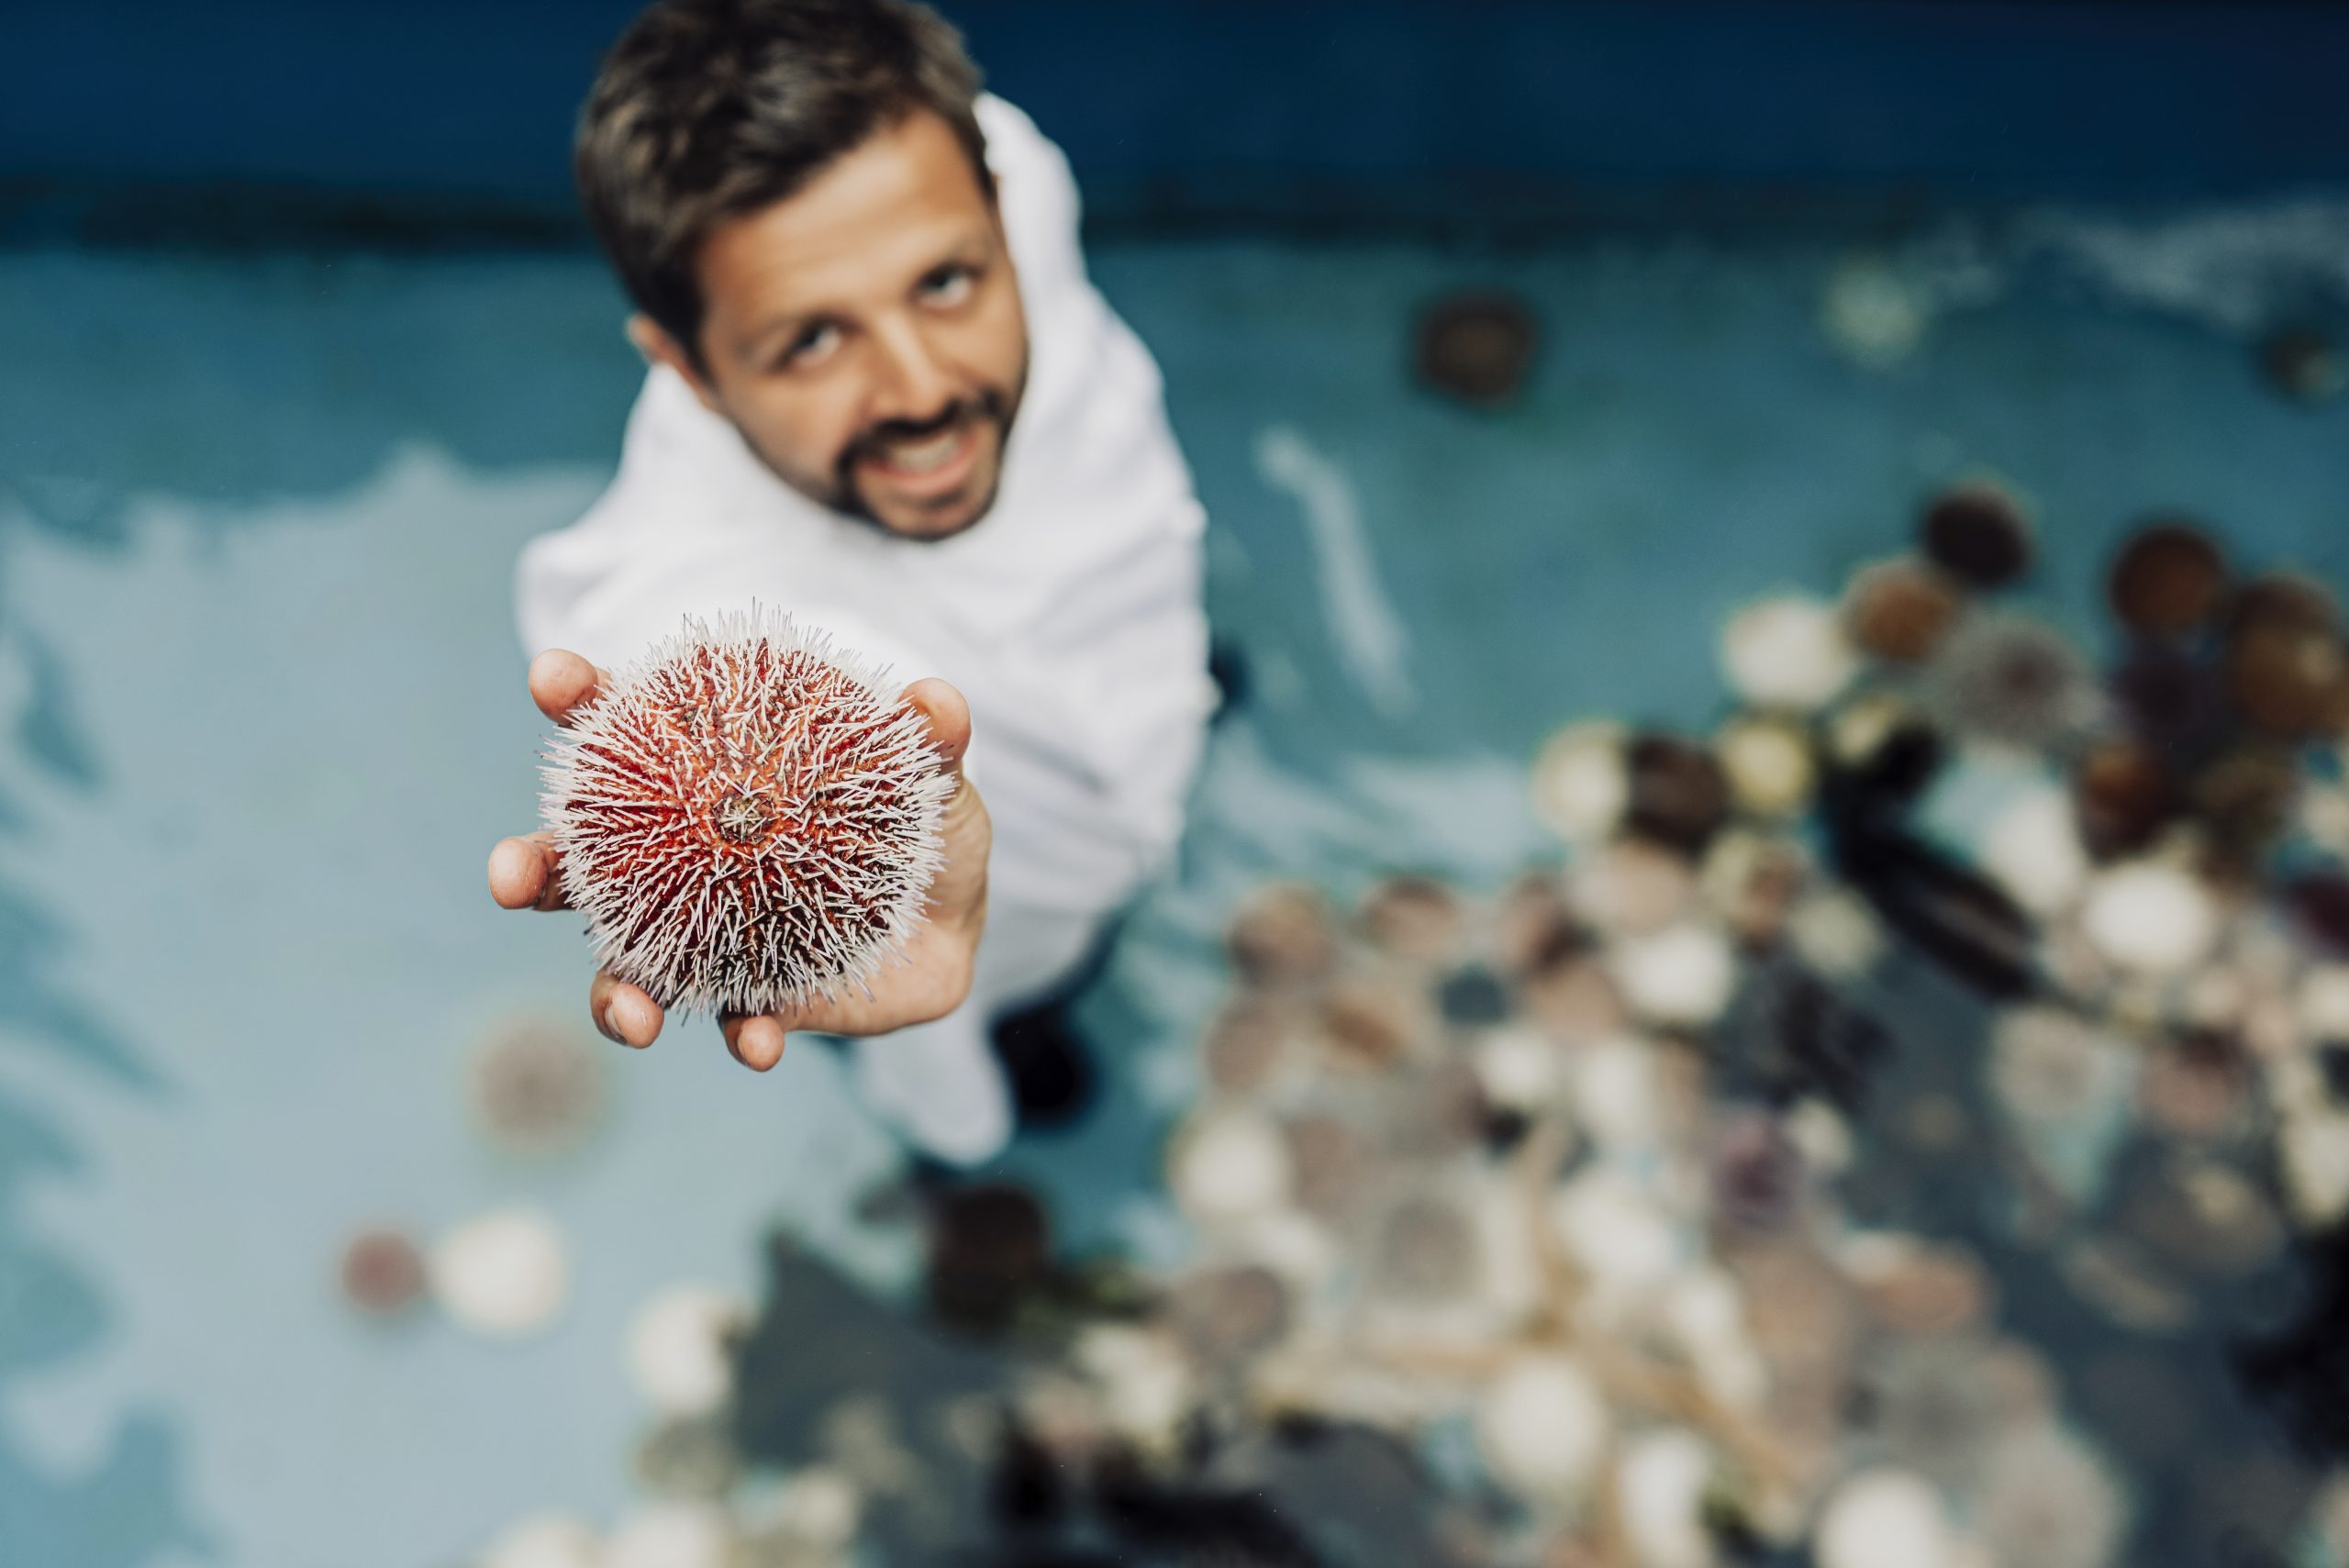 The chef keeps urchin